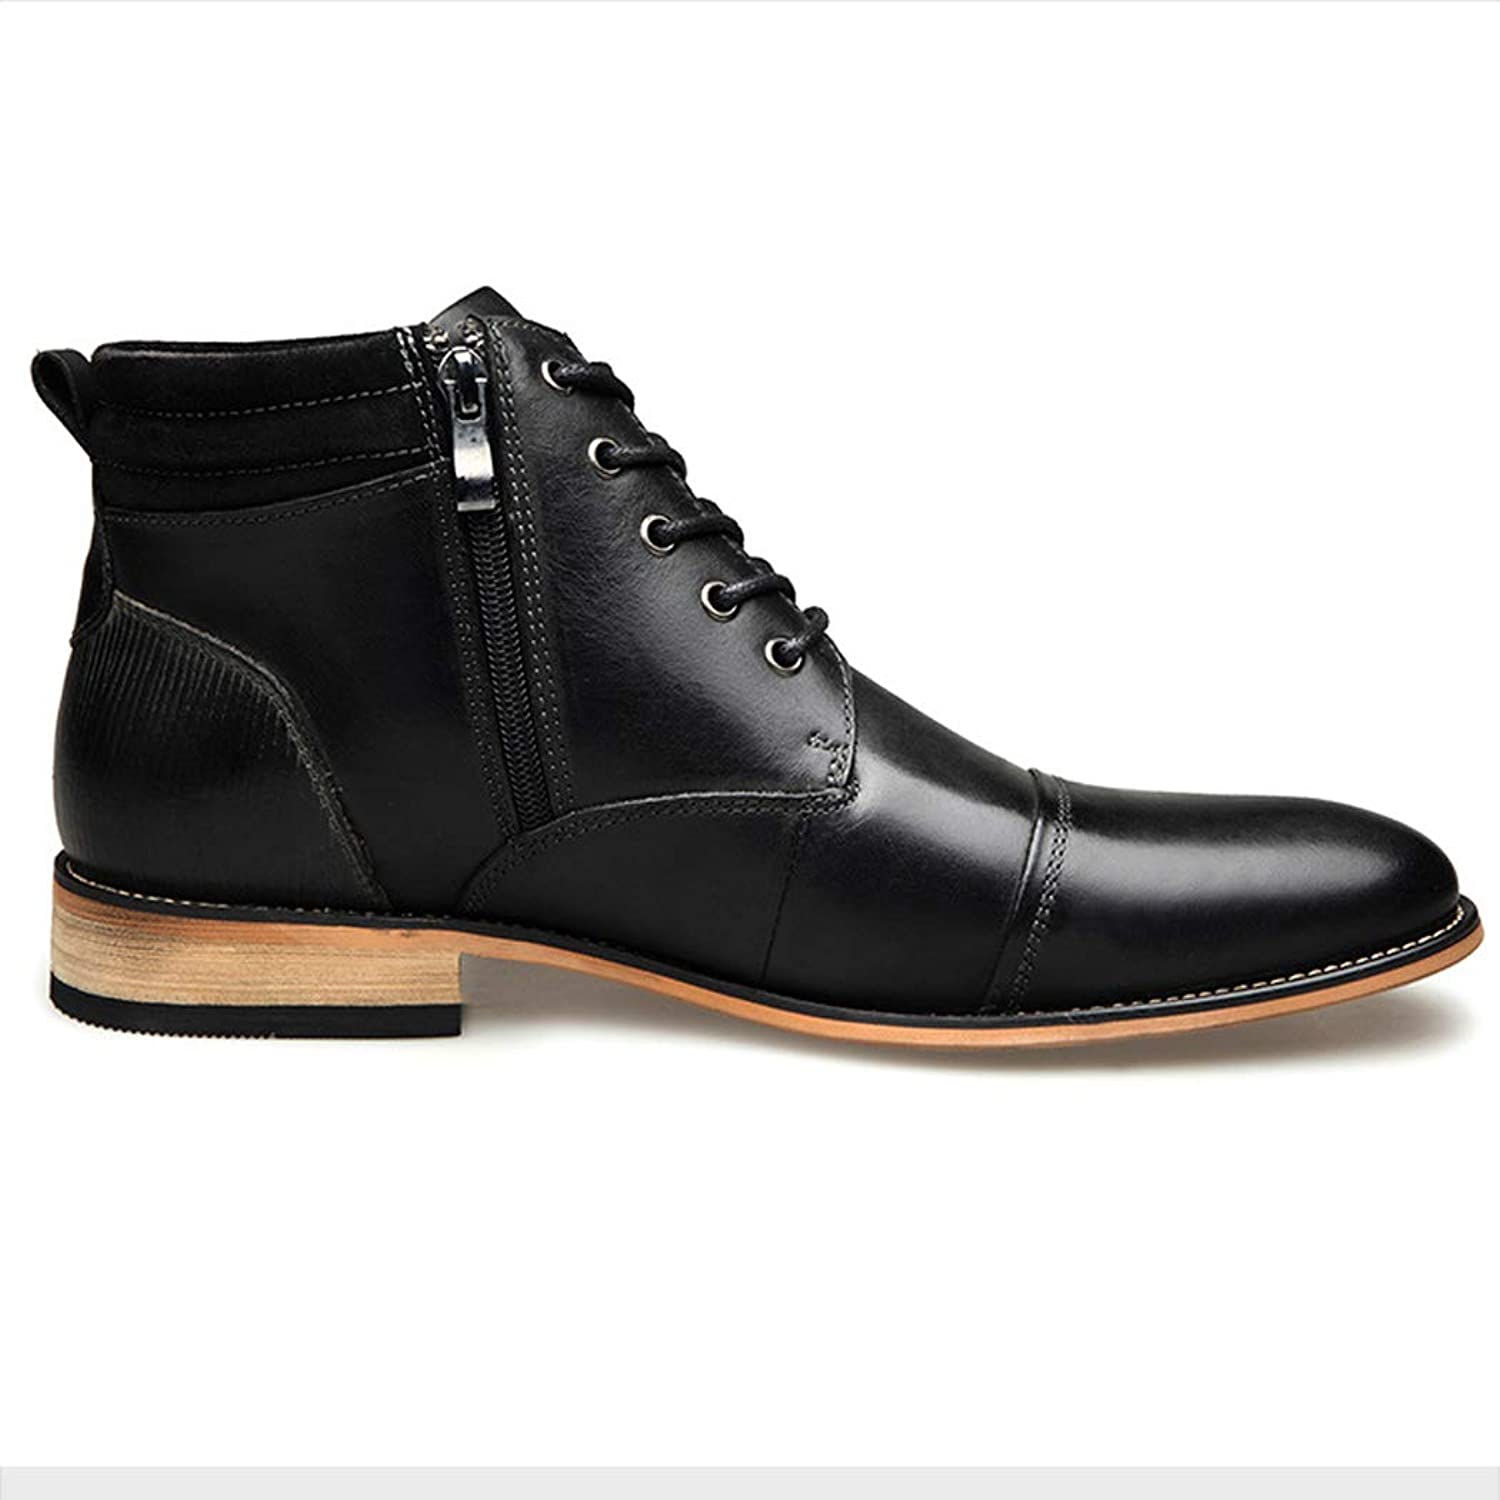 Martin Boots Men's Casual Boots, high-top Men's shoes, Leather shoes, Men's Leather Boots